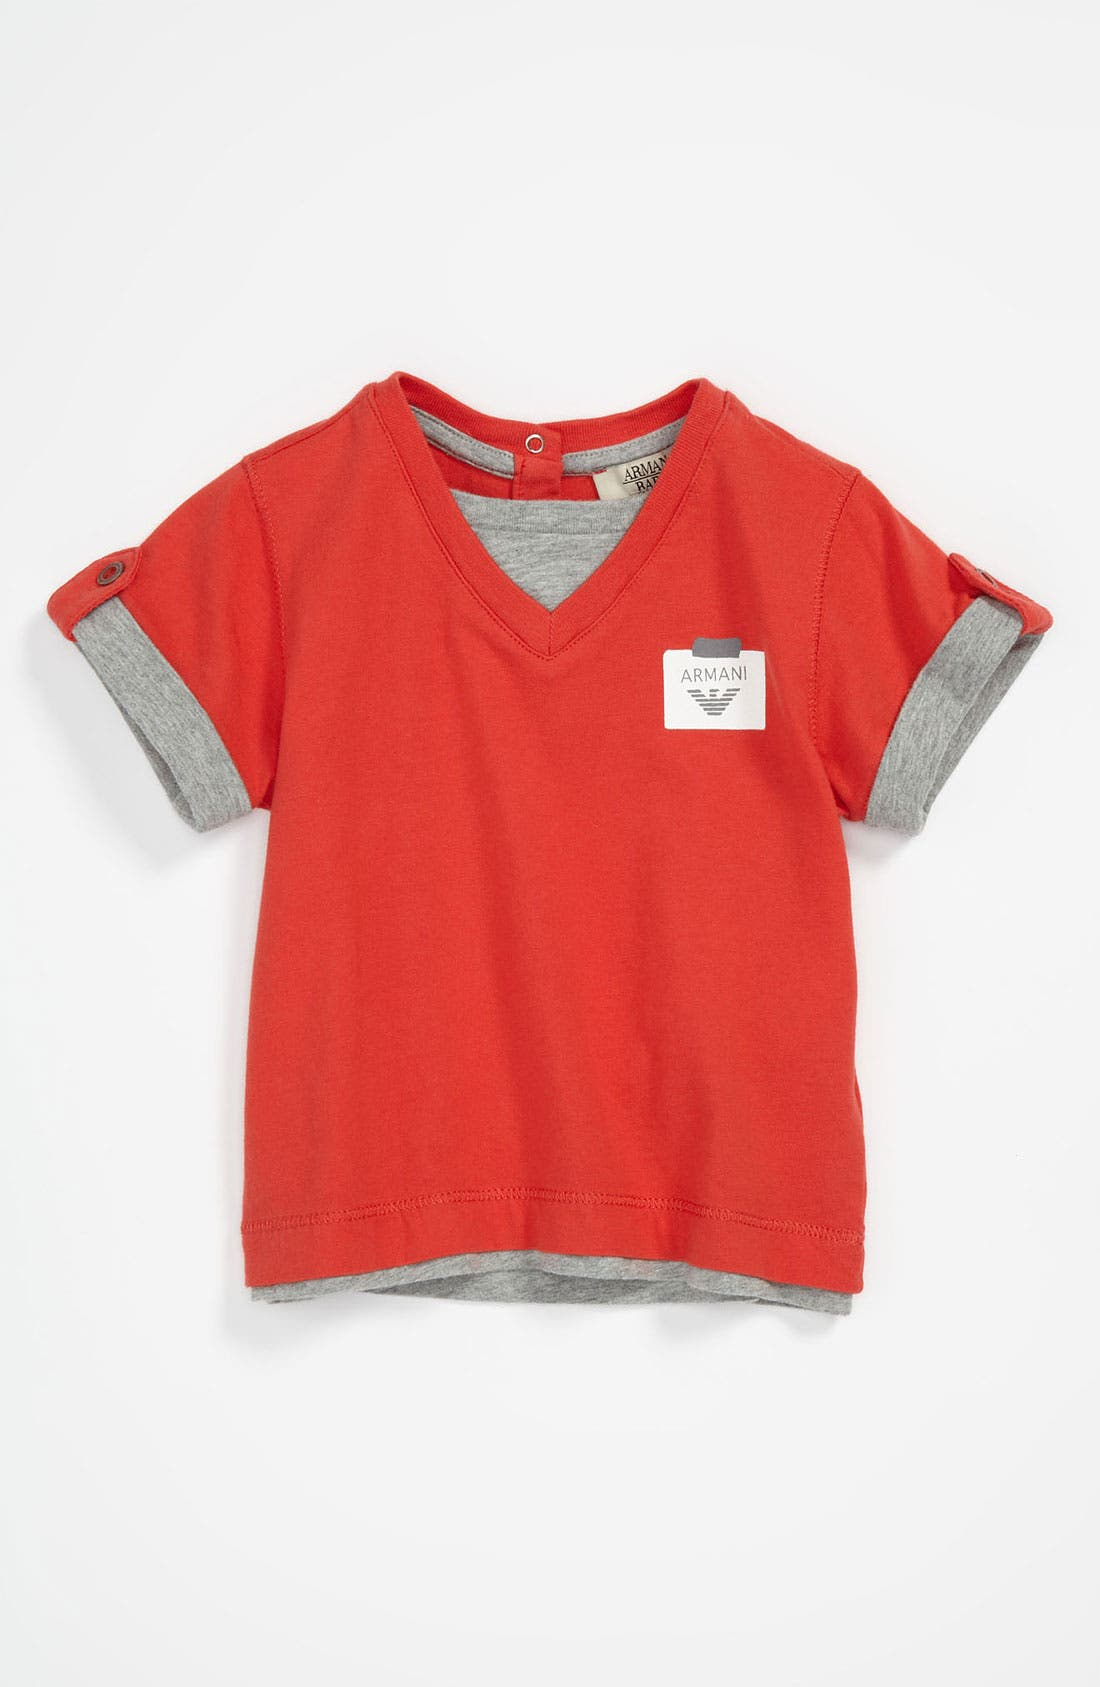 Alternate Image 1 Selected - Armani Junior T-Shirt (Baby)